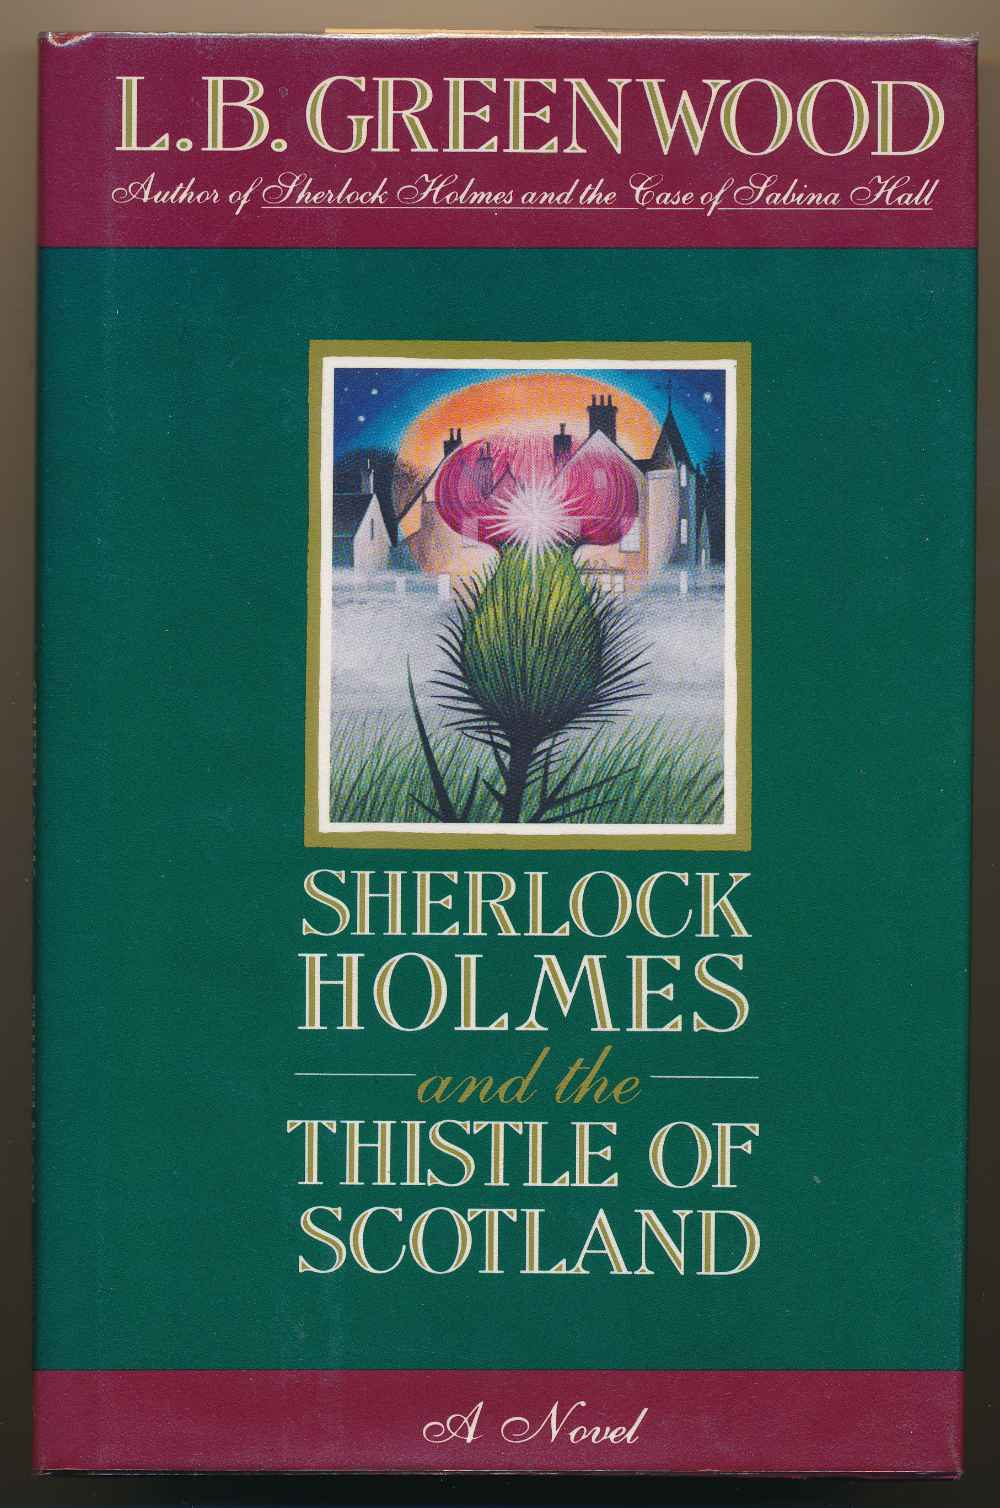 Sherlock Holmes and the thistle of Scotland